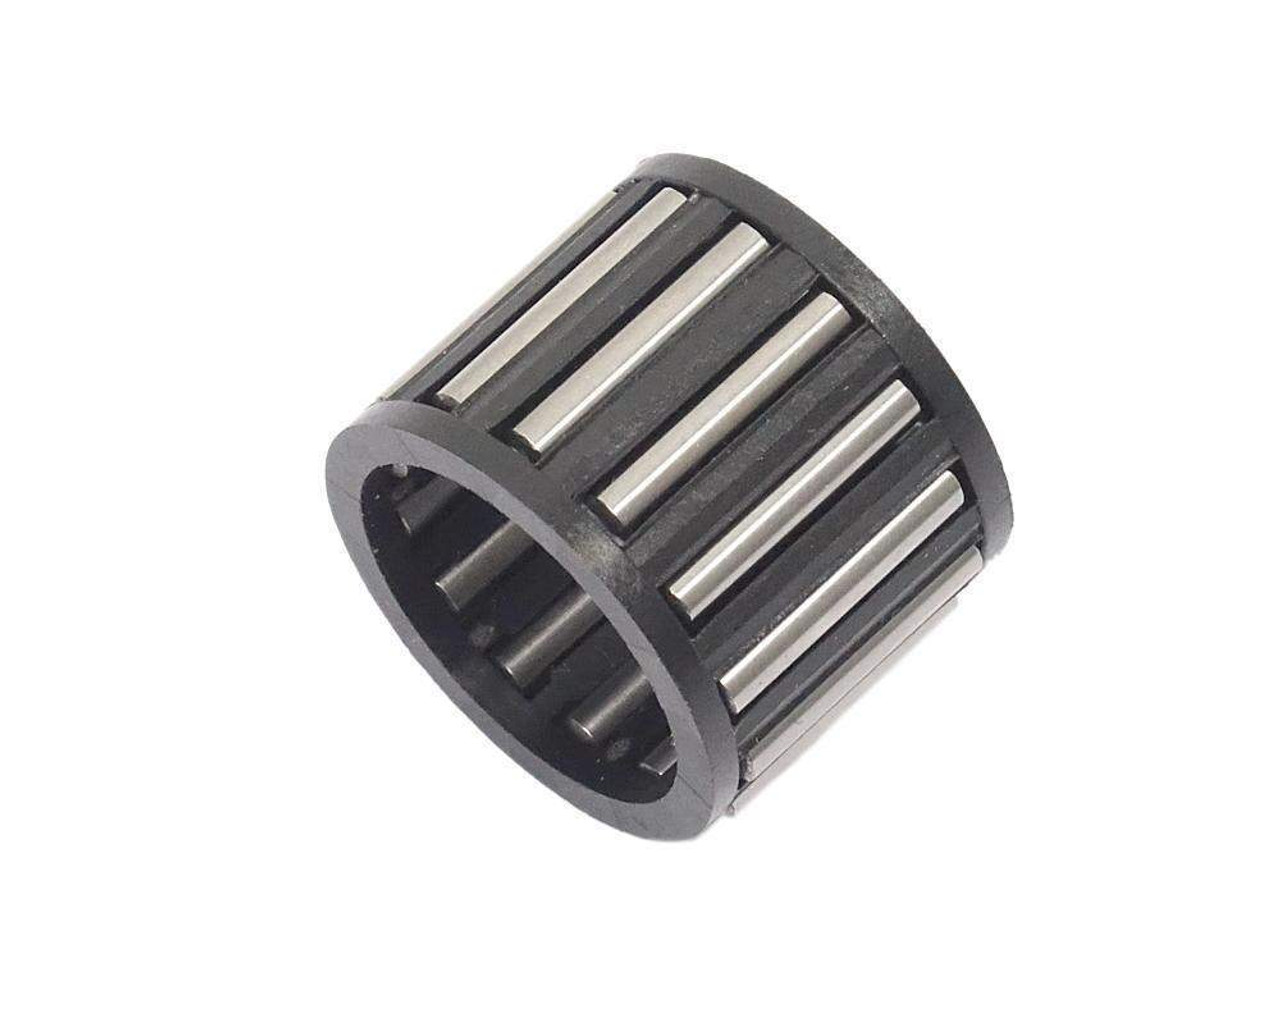 Transmission needle bearing - Auto Ricambi FIAT 124 Spider, Sport Coupe, Spider 2000 and Pininfarina 1966-1985 with 5-speed transmission